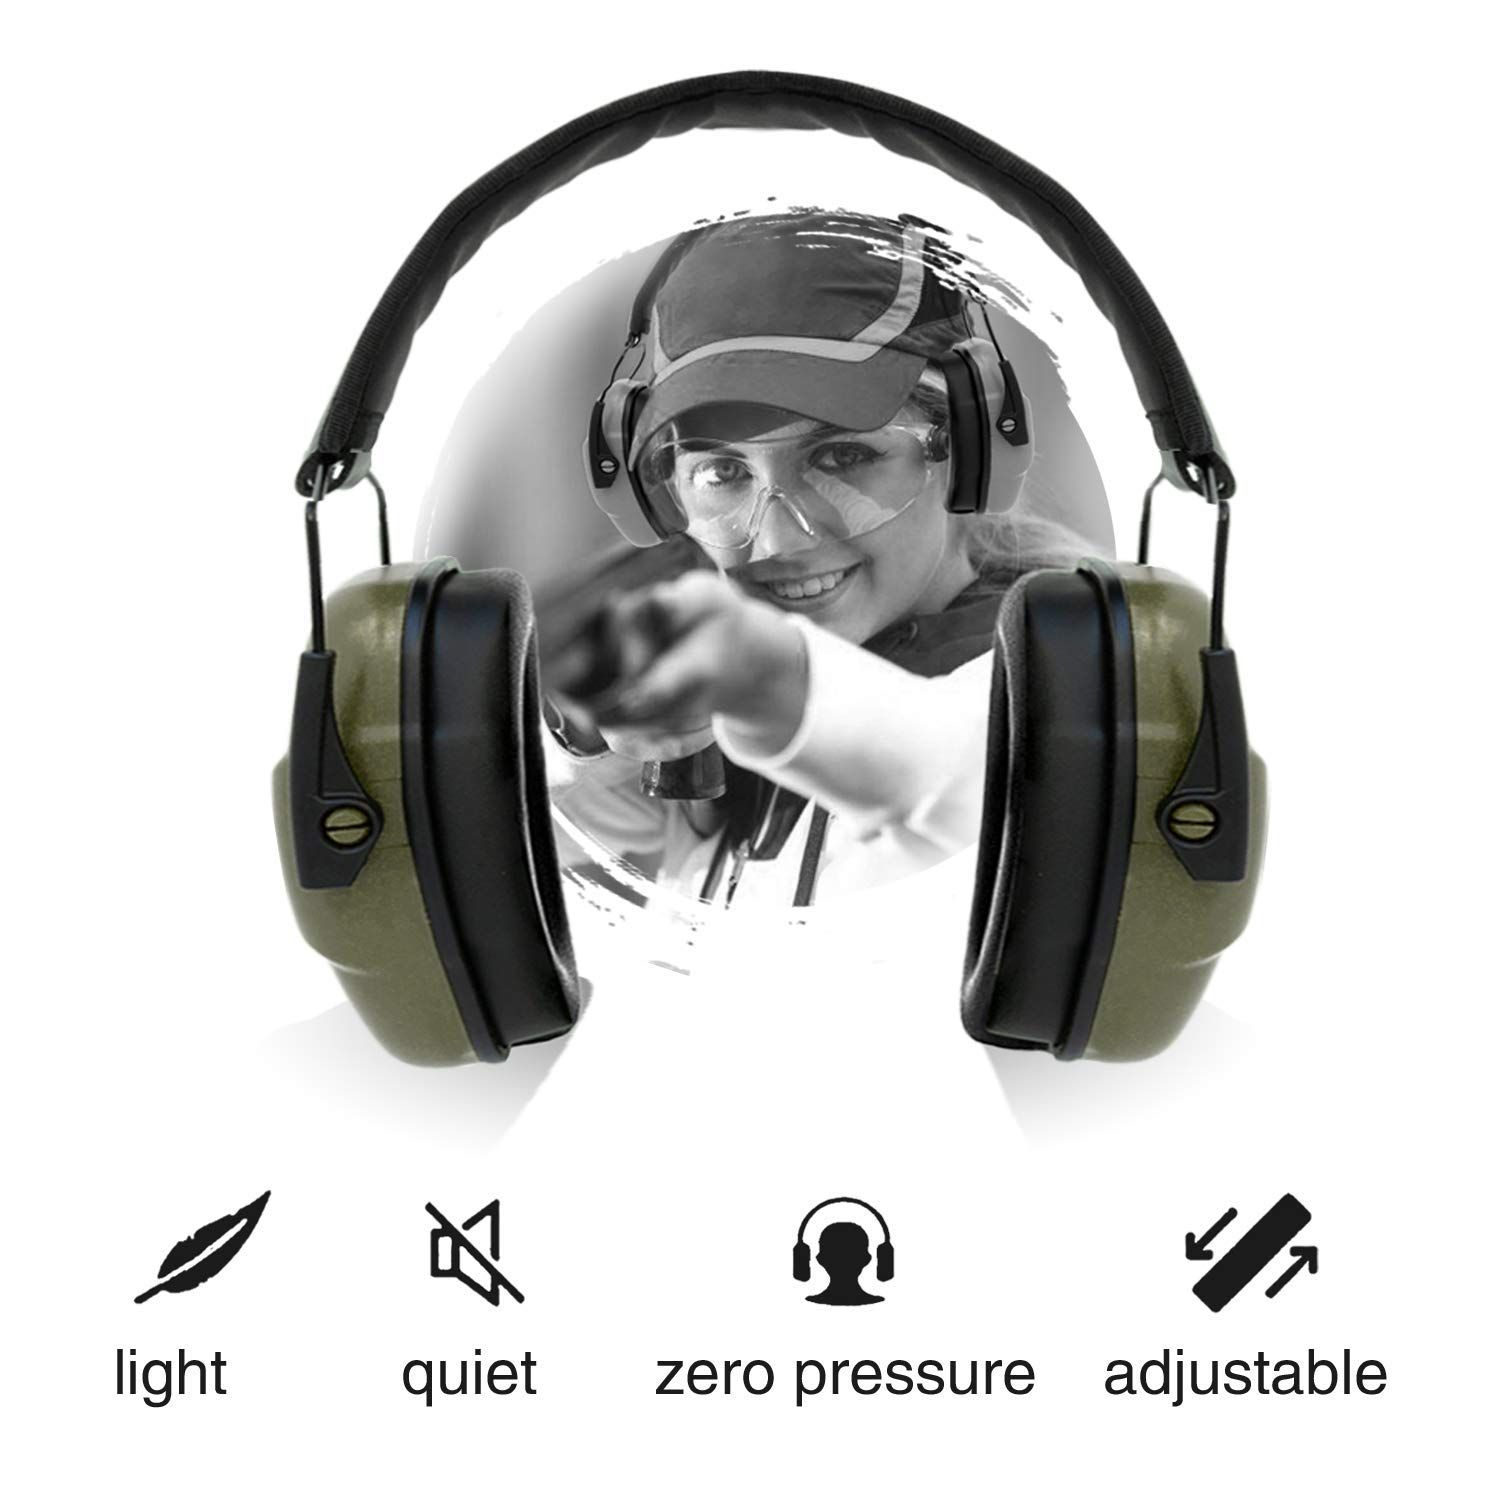 09a01aa7c1d ucho Shooting Ear Protection Safety Earmuffs - NRR 34dB Noise Reduction  Cancelling Headphones Adjustable Hearing Hunting